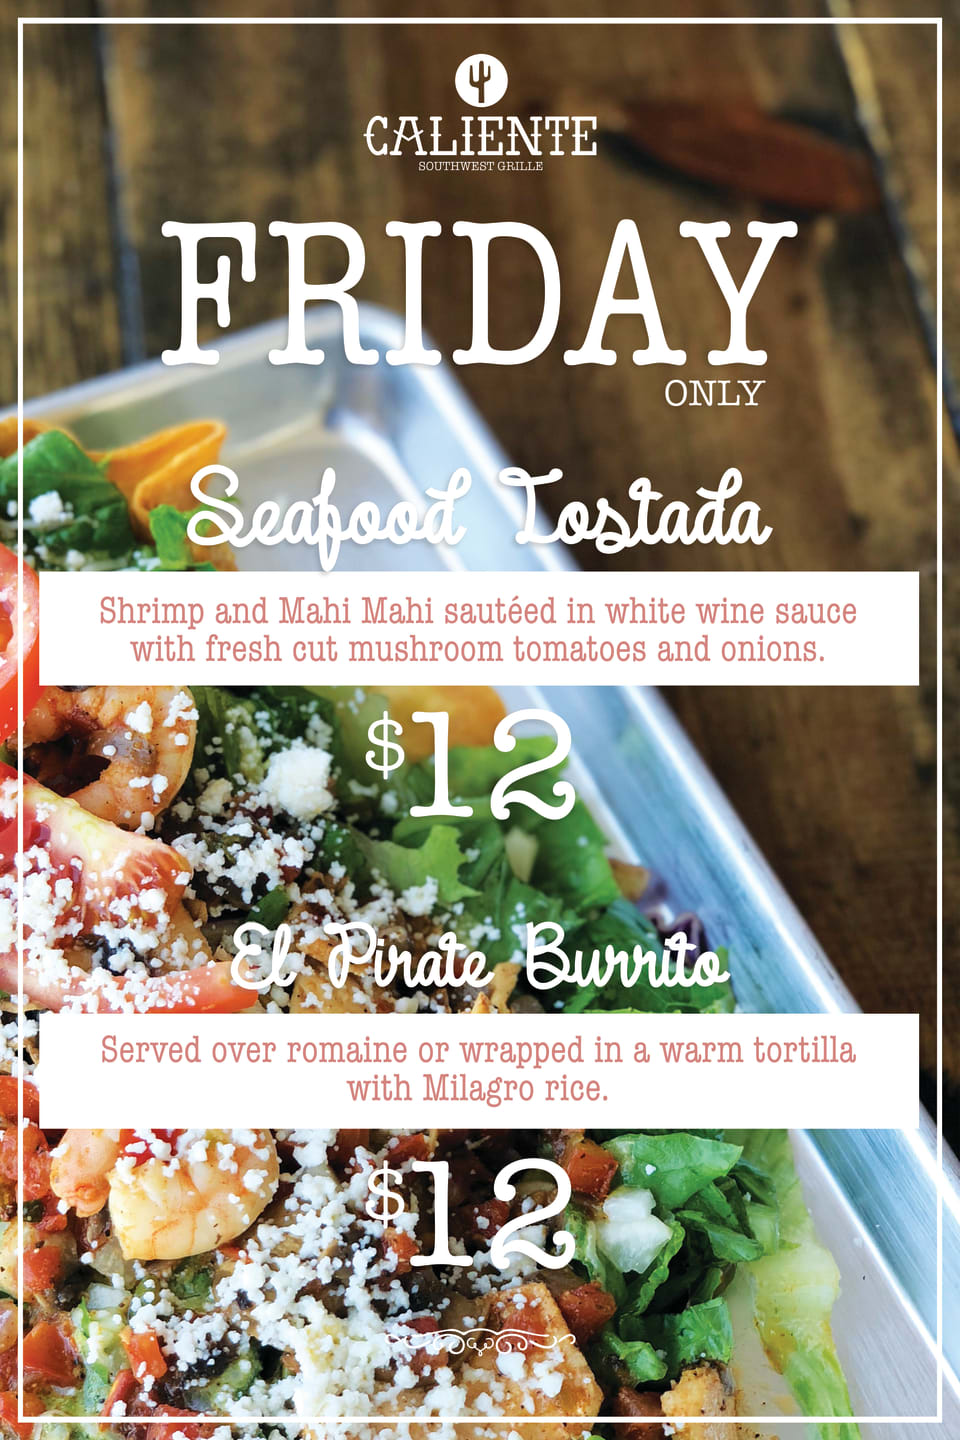 Friday Seafood Tostada and El Pirate Burrito flyer